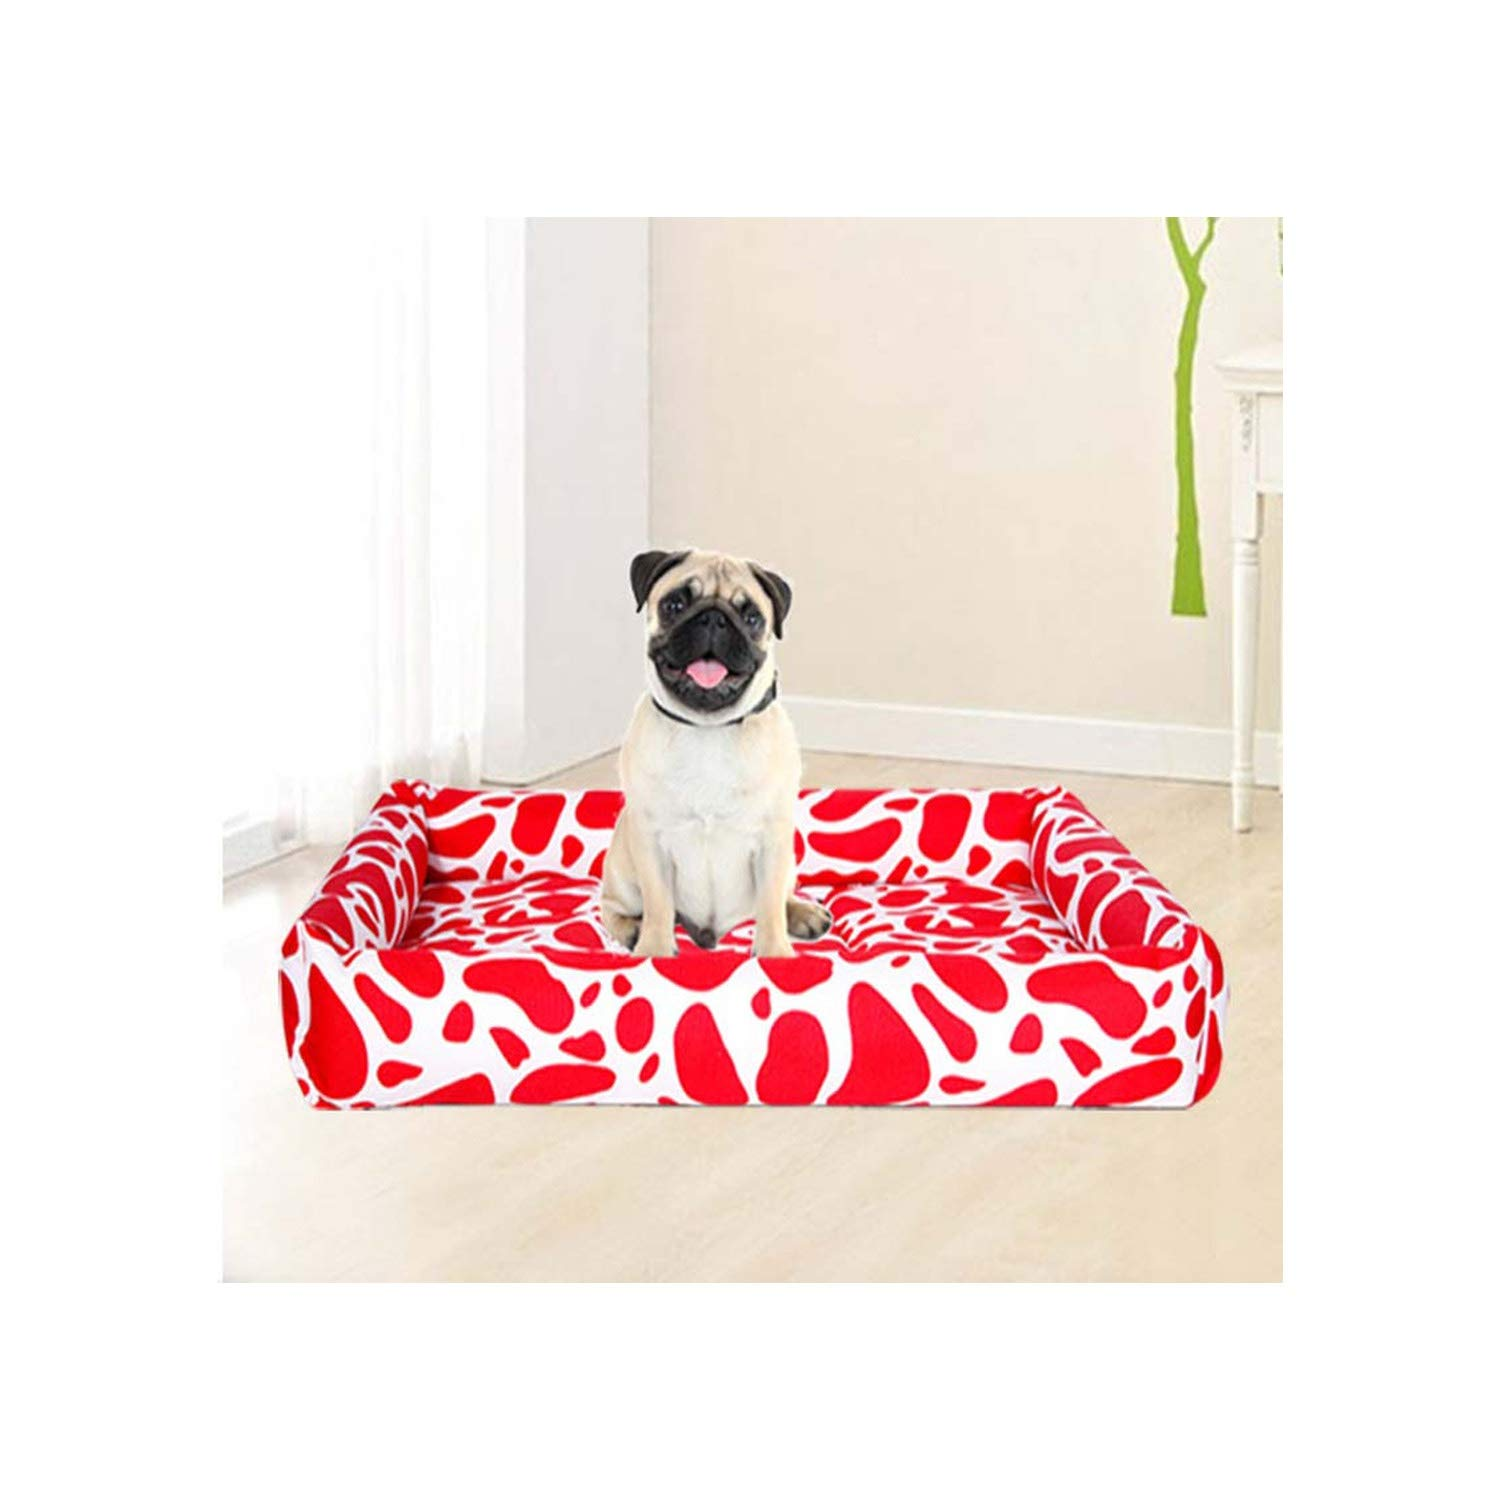 House Kennel Dog Bed Mat Puppy Cushion Summer Ice Fabric Mats Pet Products Puppy Litter Dogs Cat Beds,Red White,75X60 cm